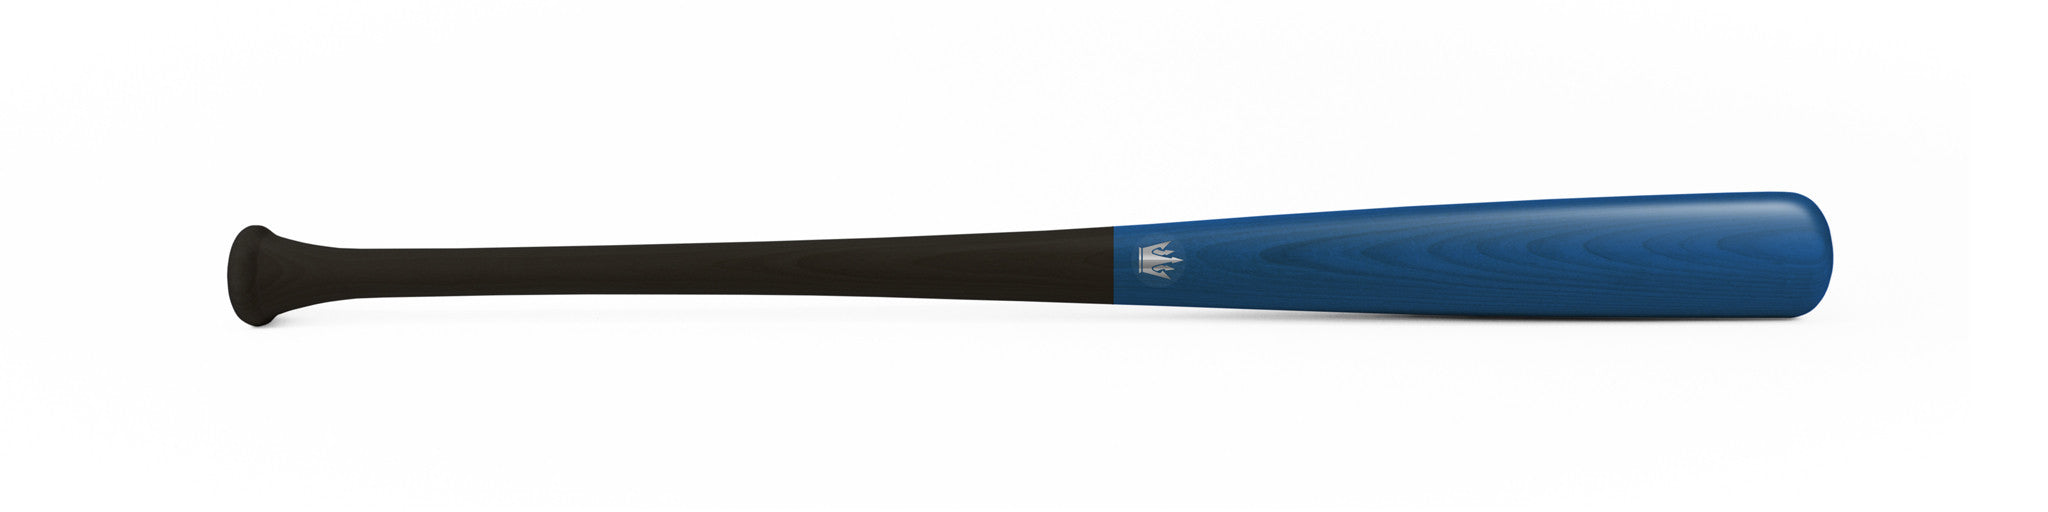 Wood bat - Birch model Y271 Black Royal - 12